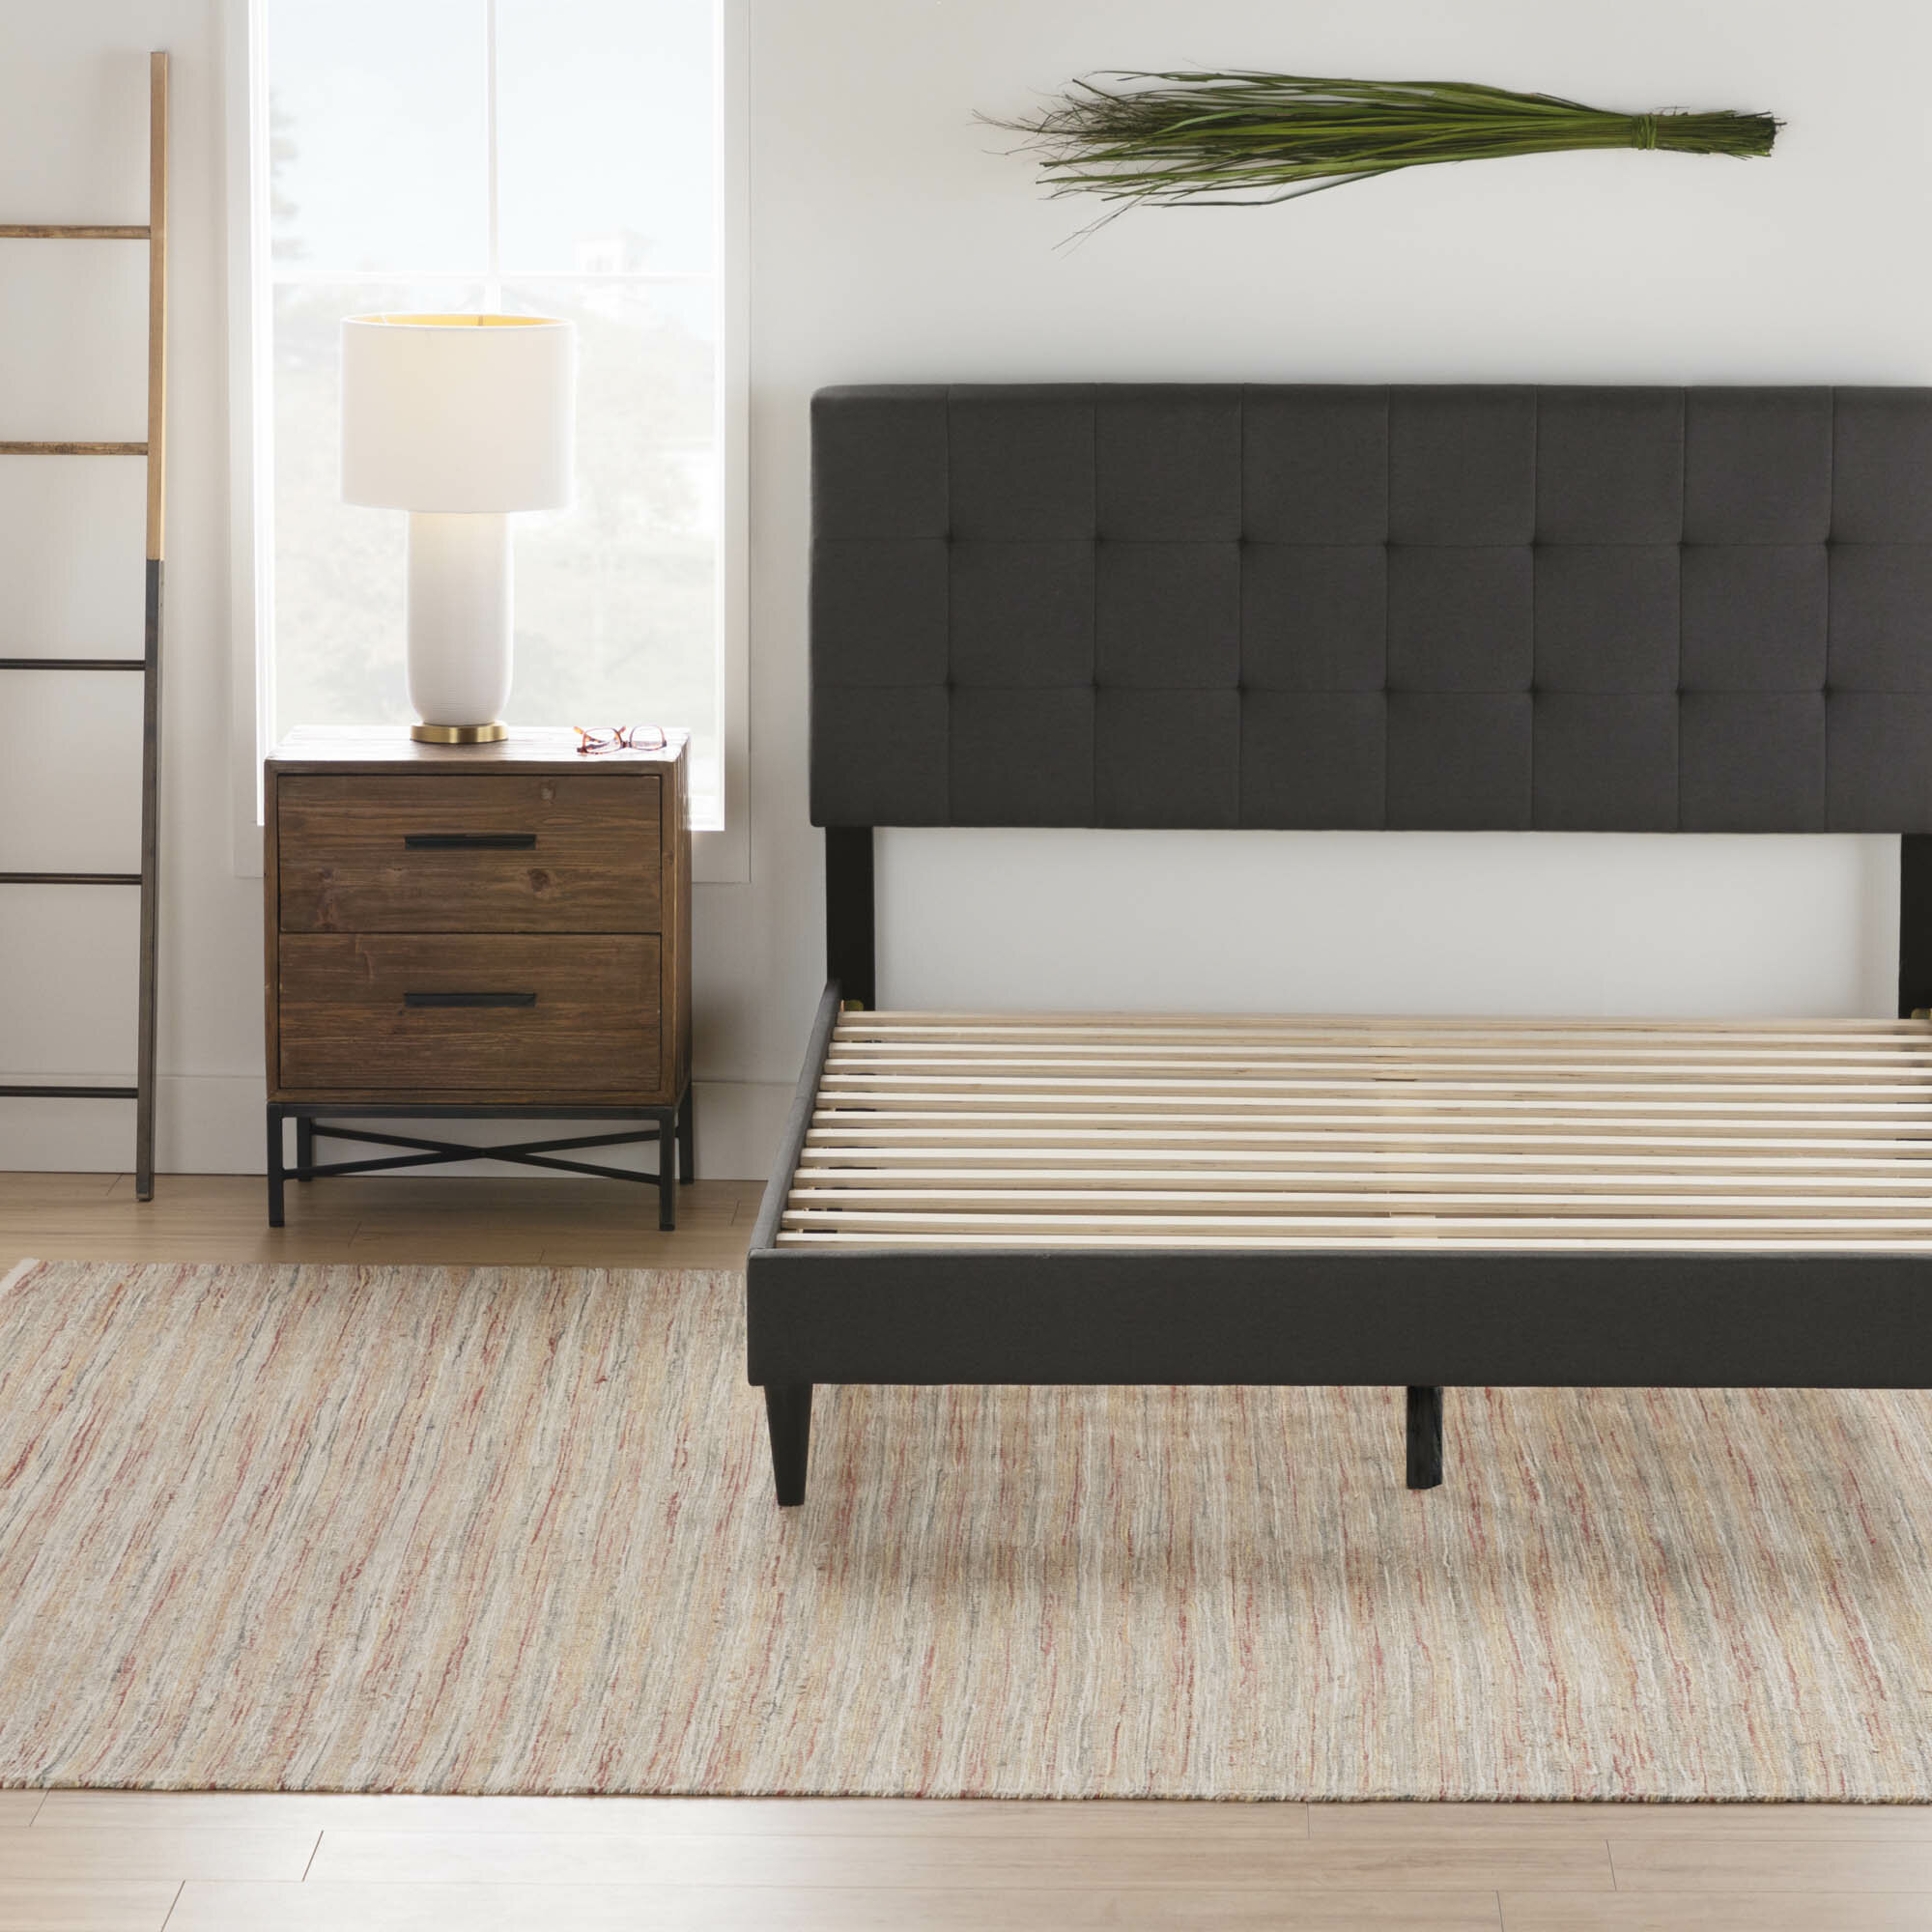 Wayfair Black Upholstered Beds You Ll Love In 2021